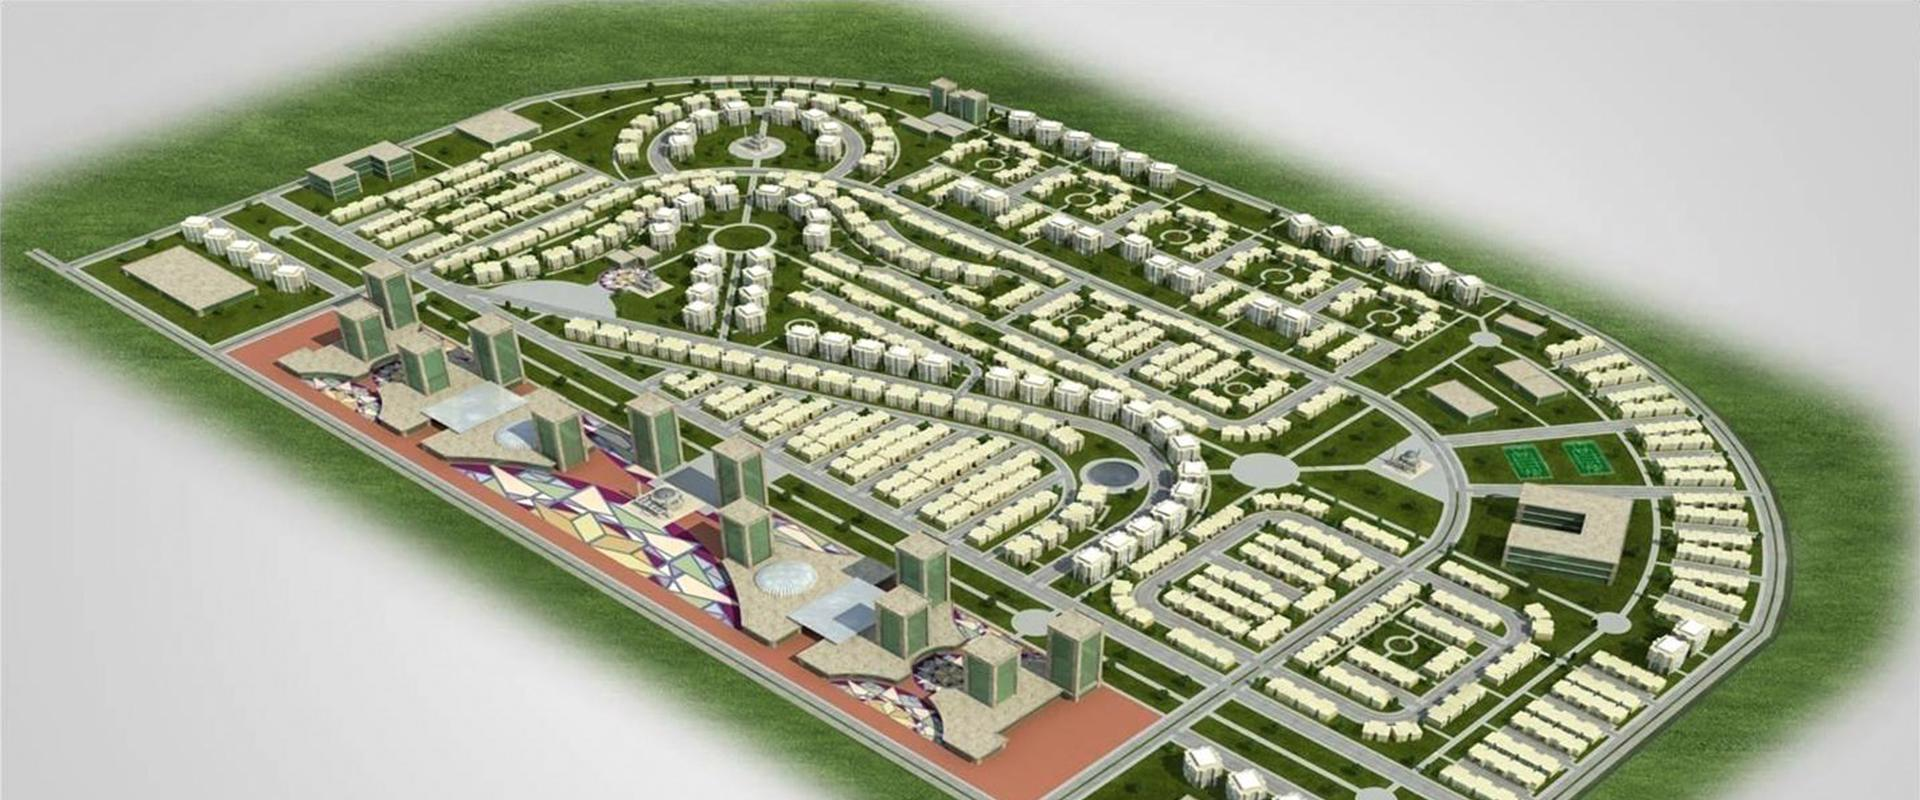 KIRKUK HOUSING MASTER PLAN | Aslı Architecture